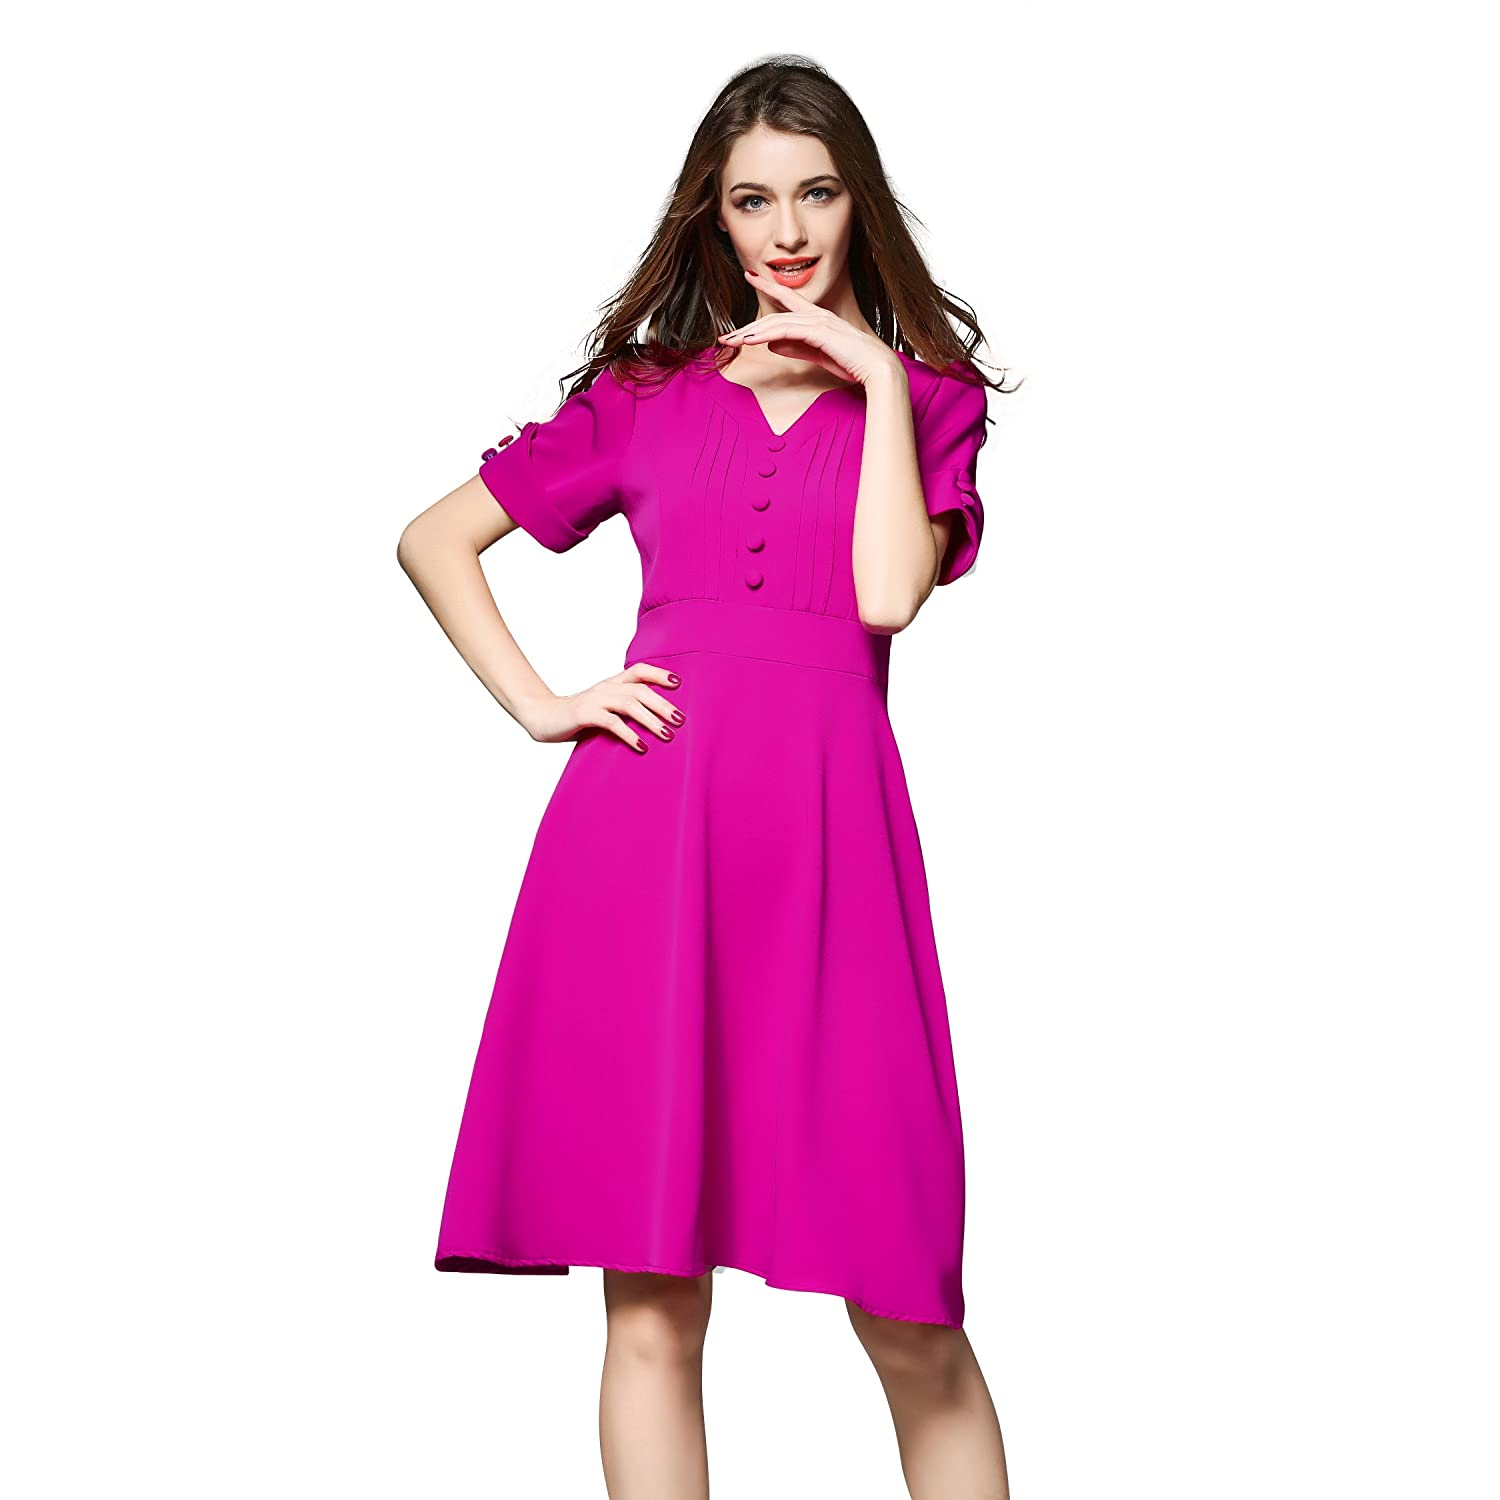 Womens Vintage Short Sleeve V Neck A line Formal Cocktail Evening Dress at Amazon Womens Clothing store: